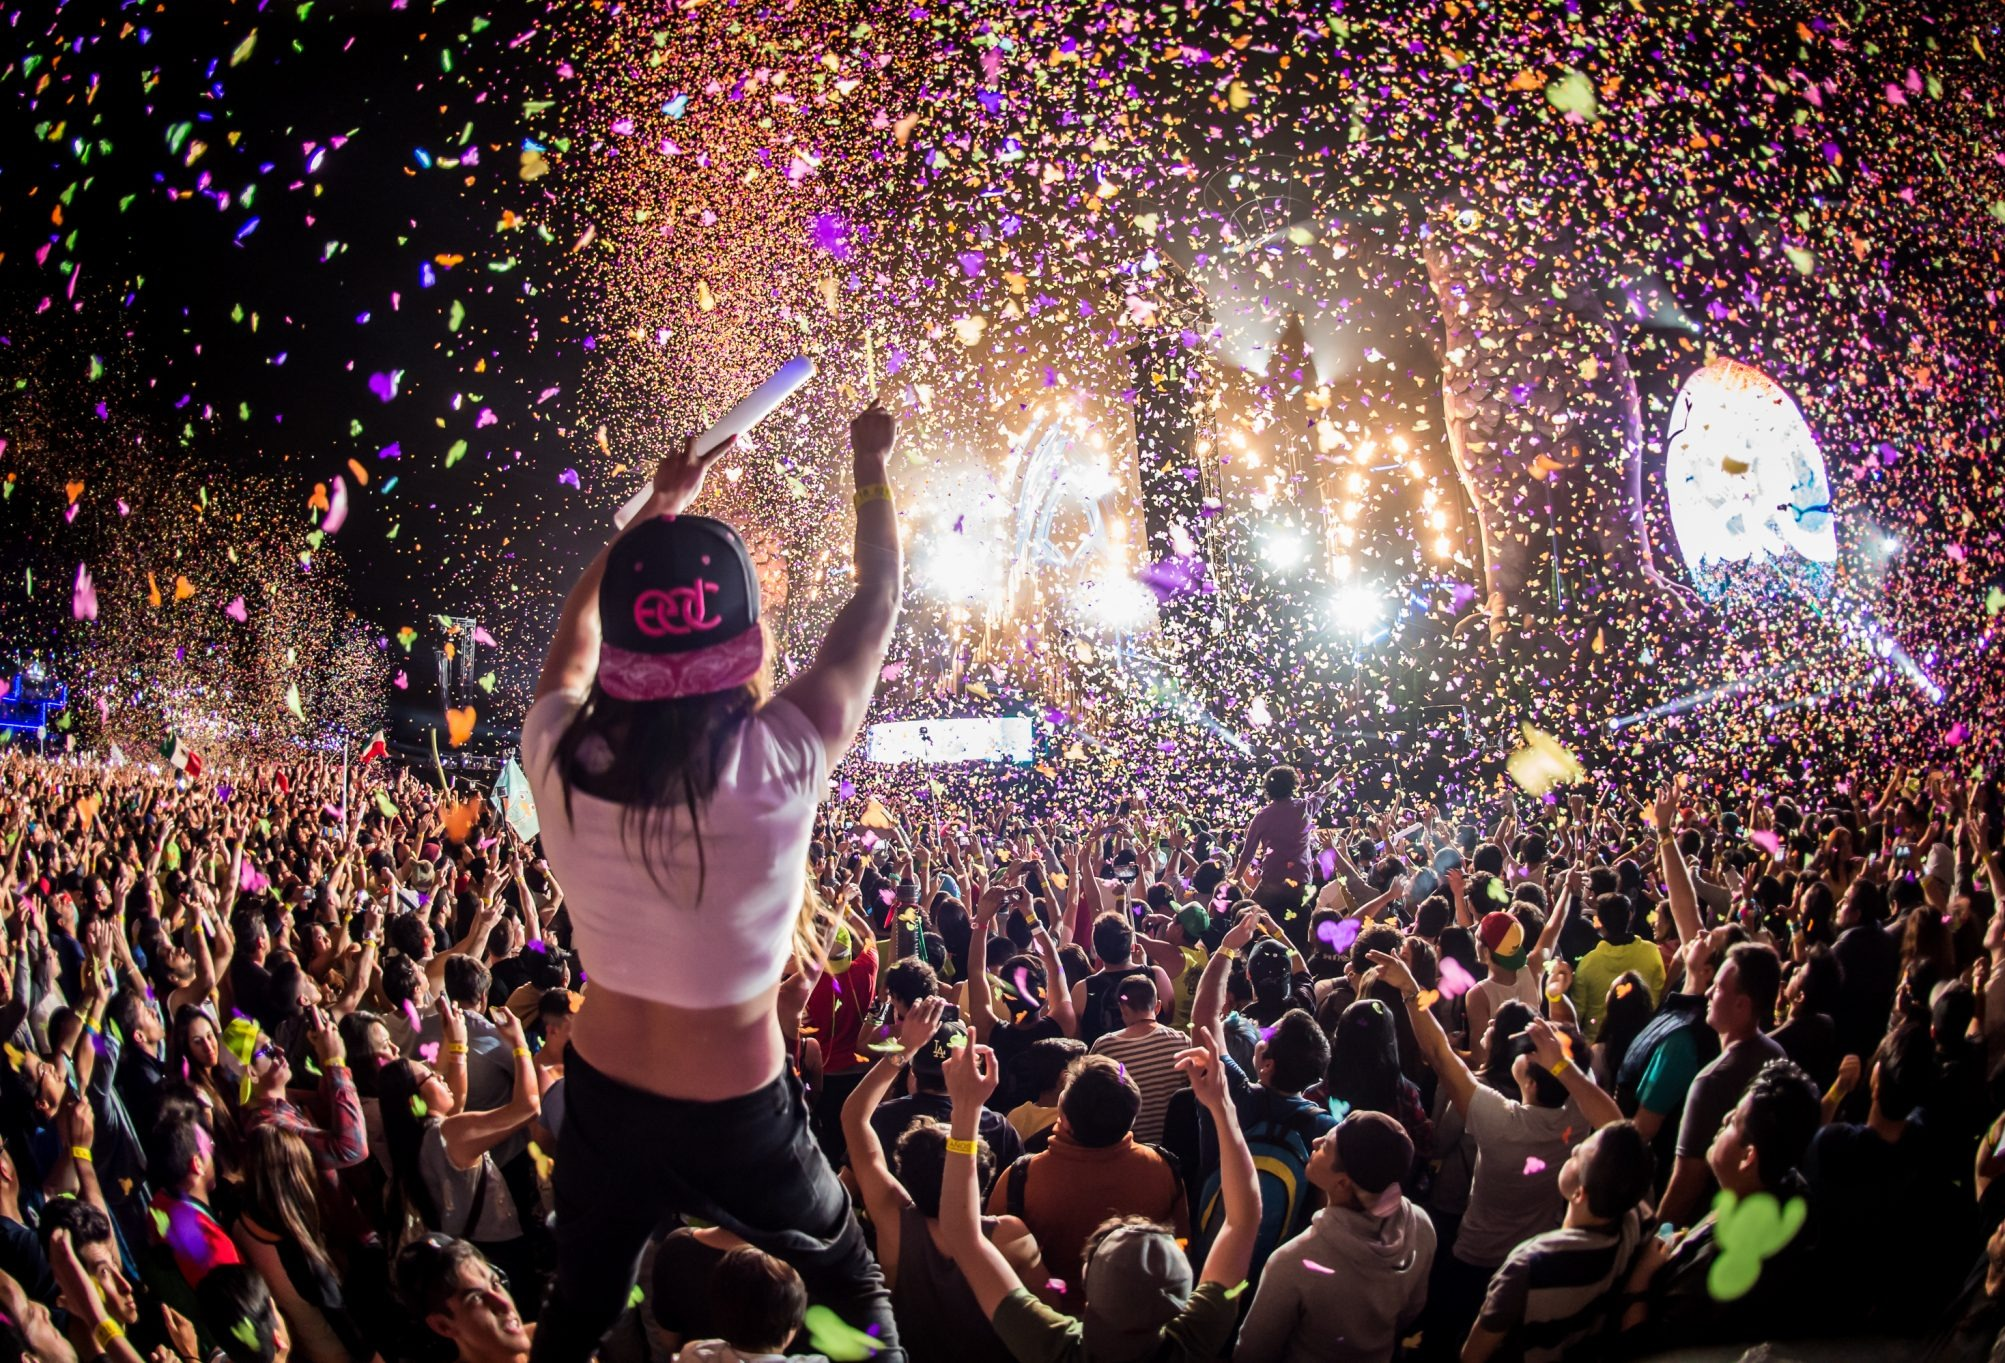 Crowds at Electric Daisy Carnival